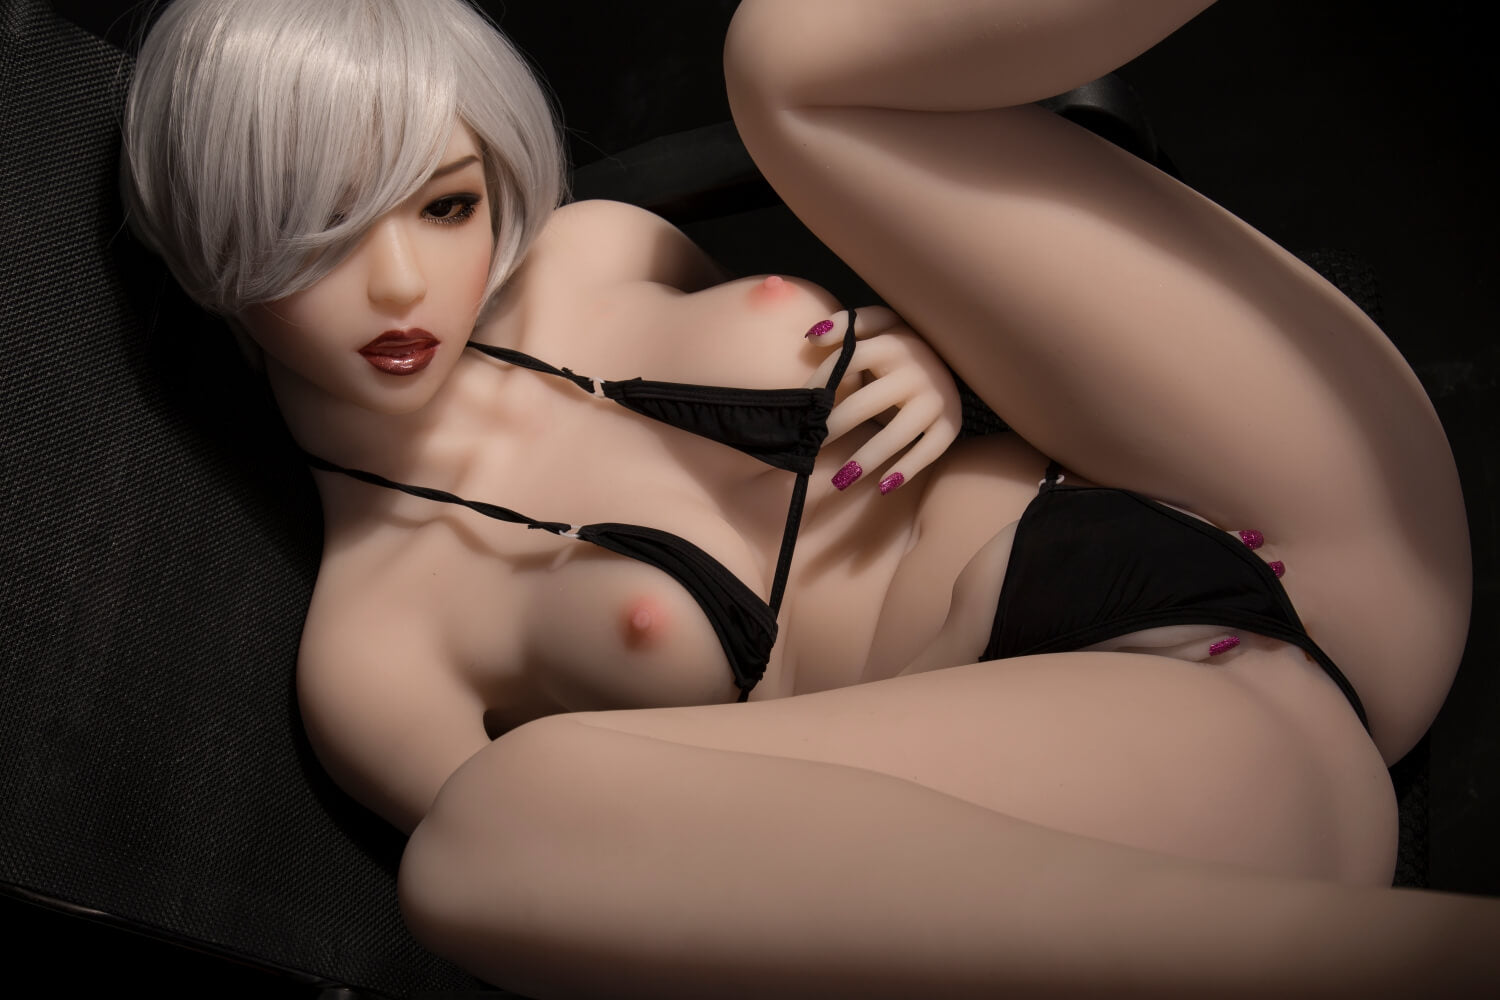 Renata Sex Doll - C cup Breasts Supermodel  Doll